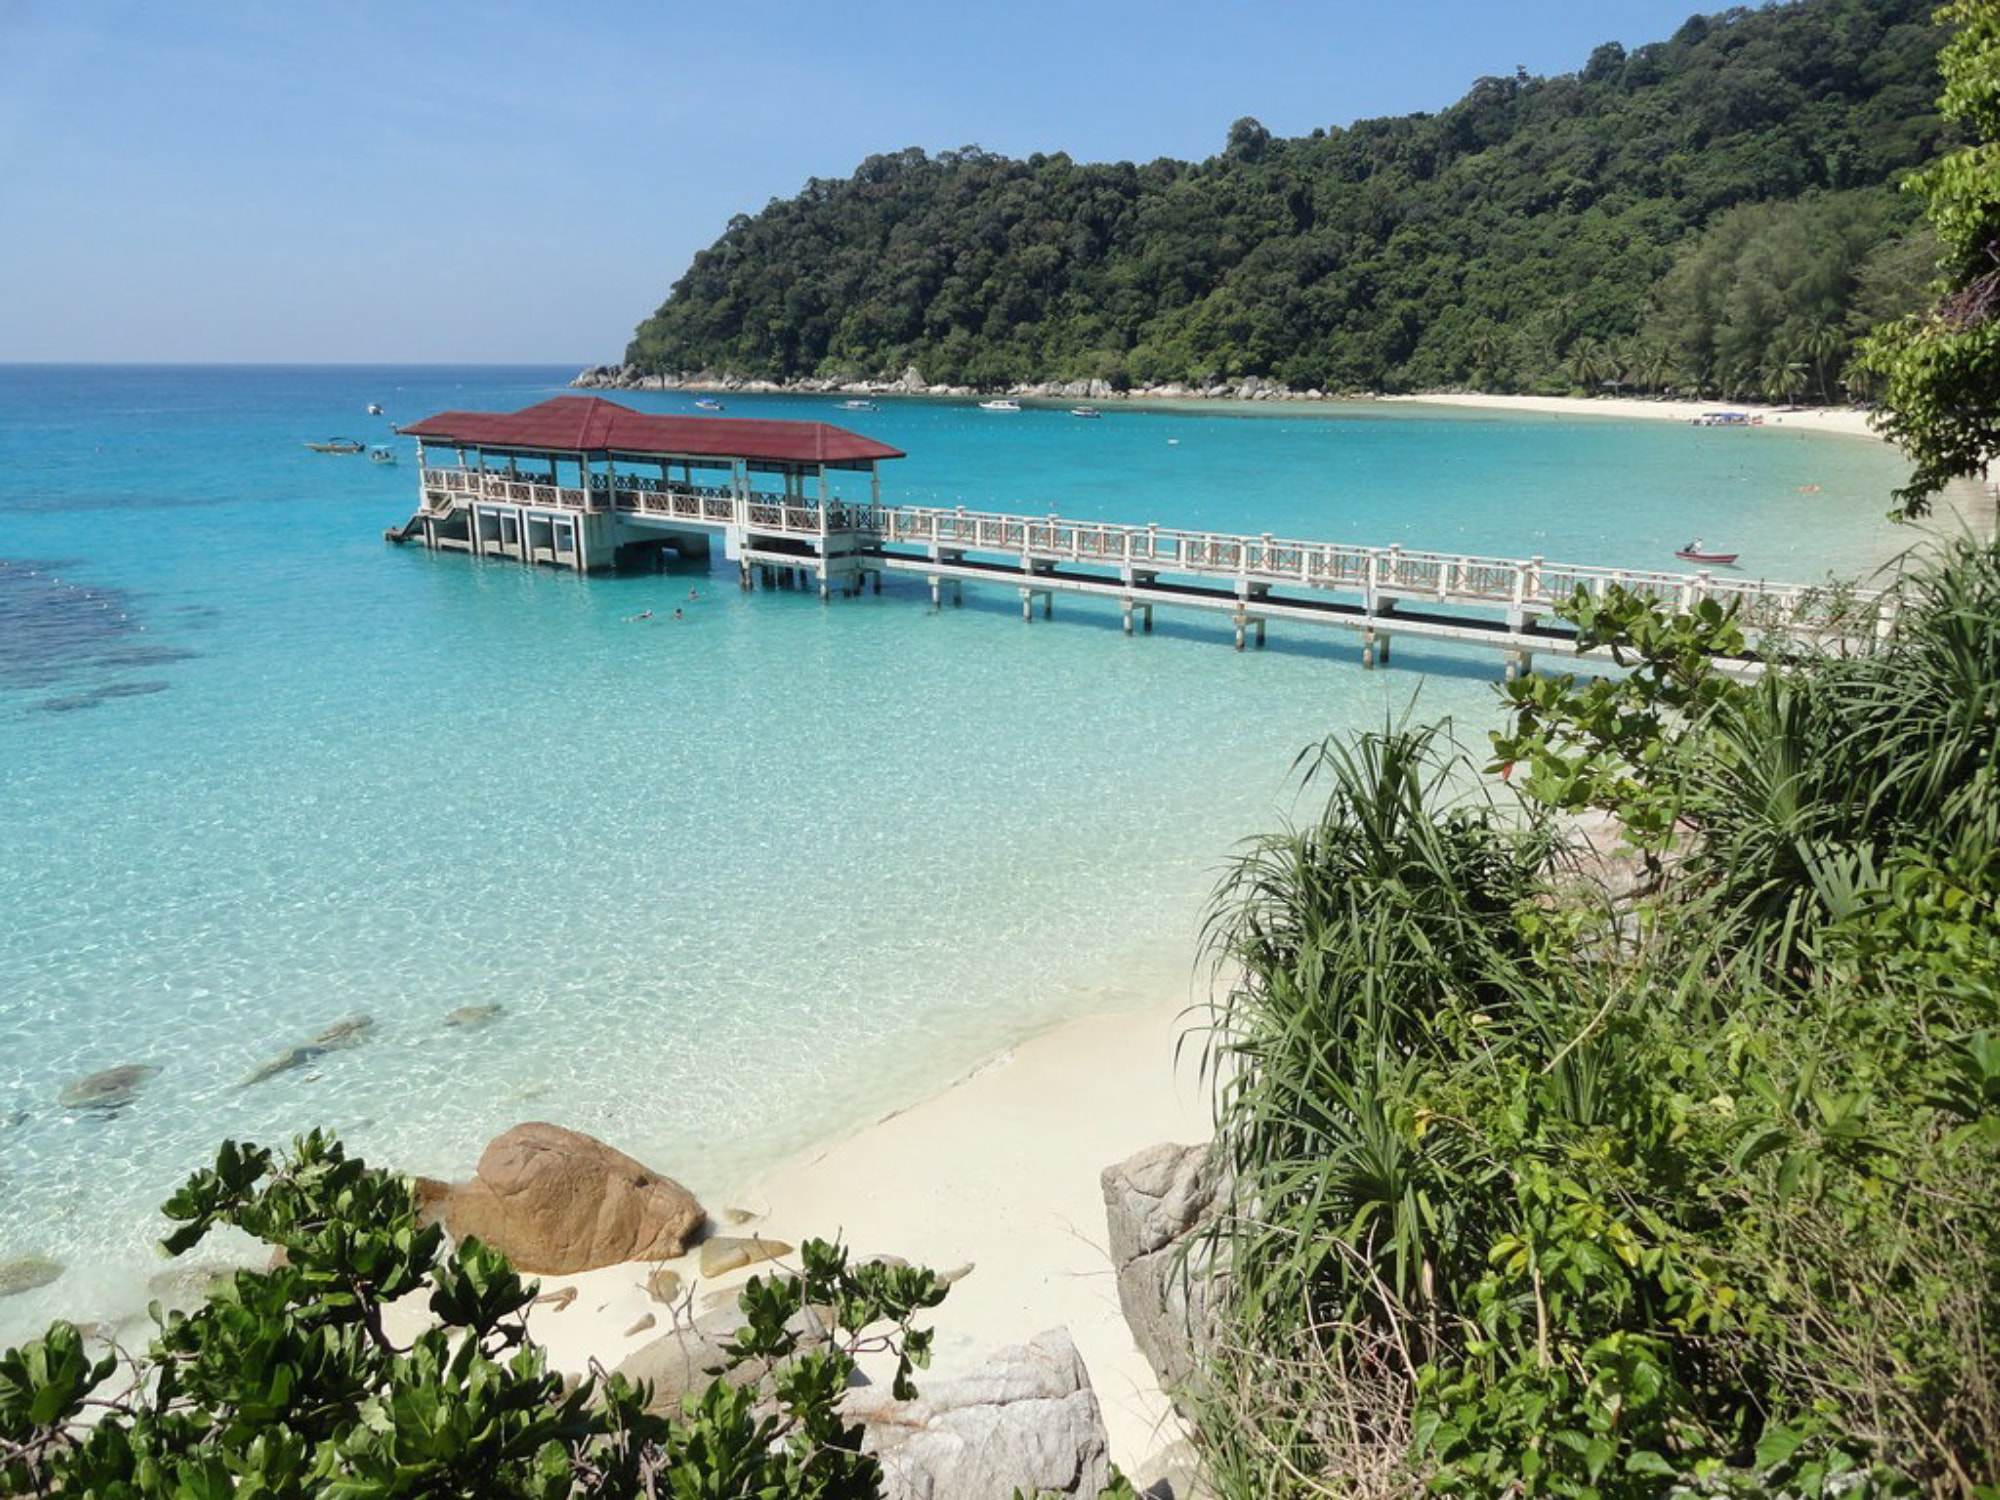 Getting to Perhentian Islands, Malaysia